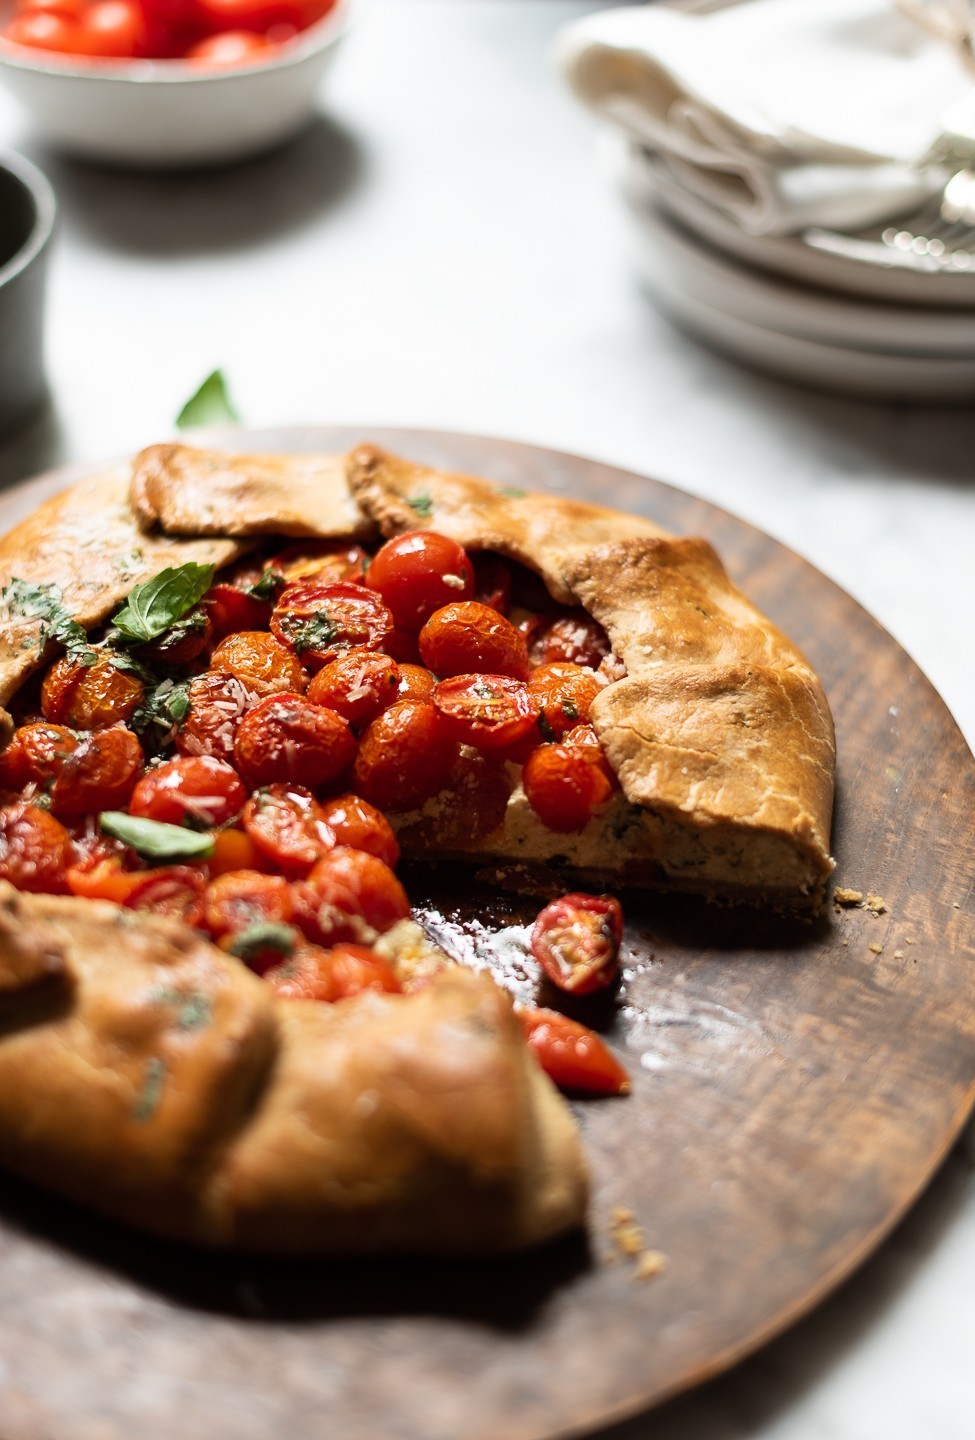 Tomato galette with ricotta and basil oil | Bibbyskitchen recipes